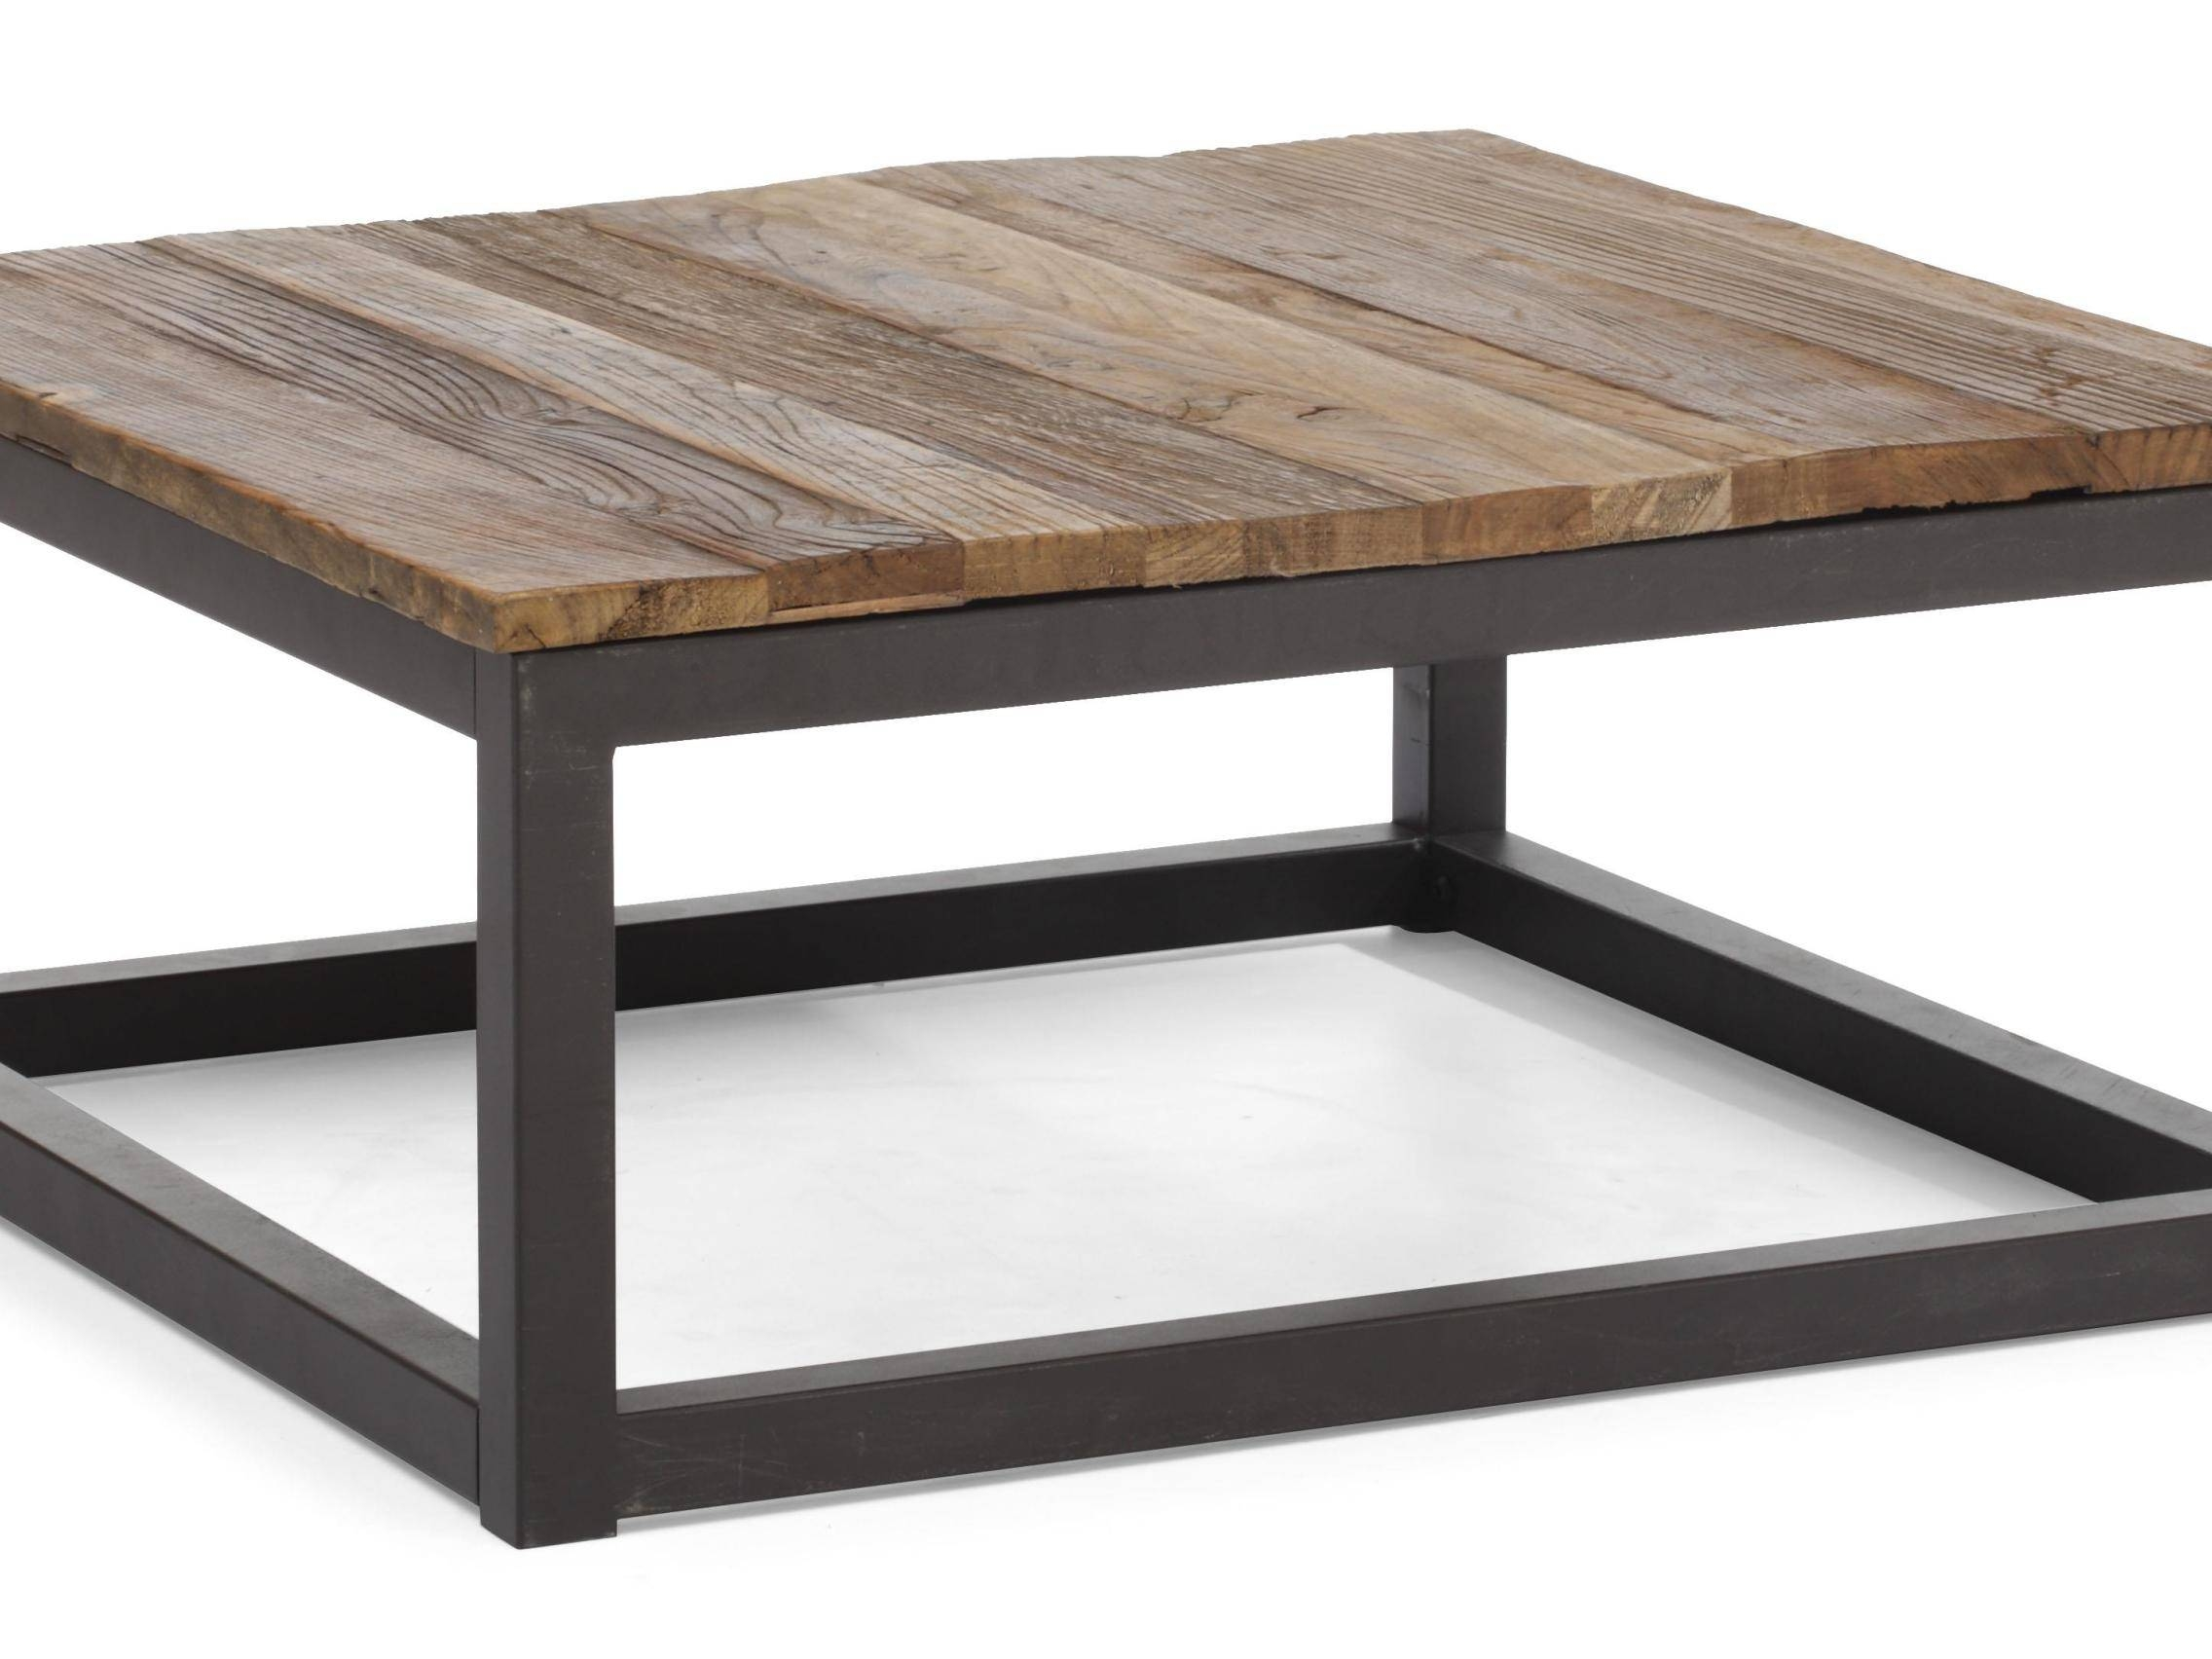 Coffee Table: New Inspirations For Coffee Table Height Design intended for Cheap Wood Coffee Tables (Image 10 of 30)